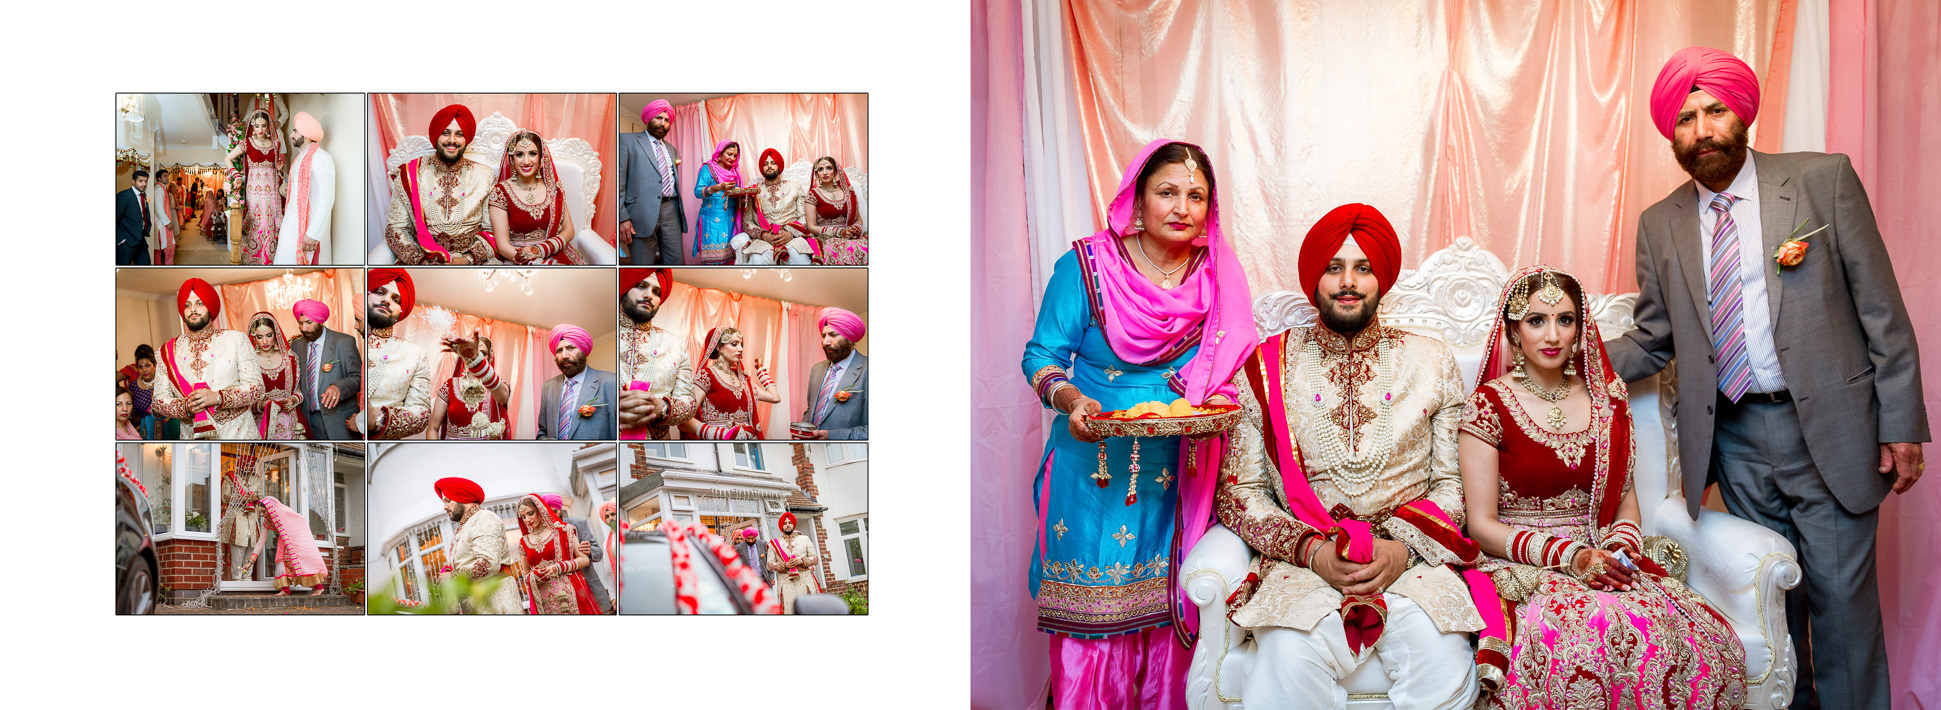 indian-wedding-photographer-sikh-27-of-43